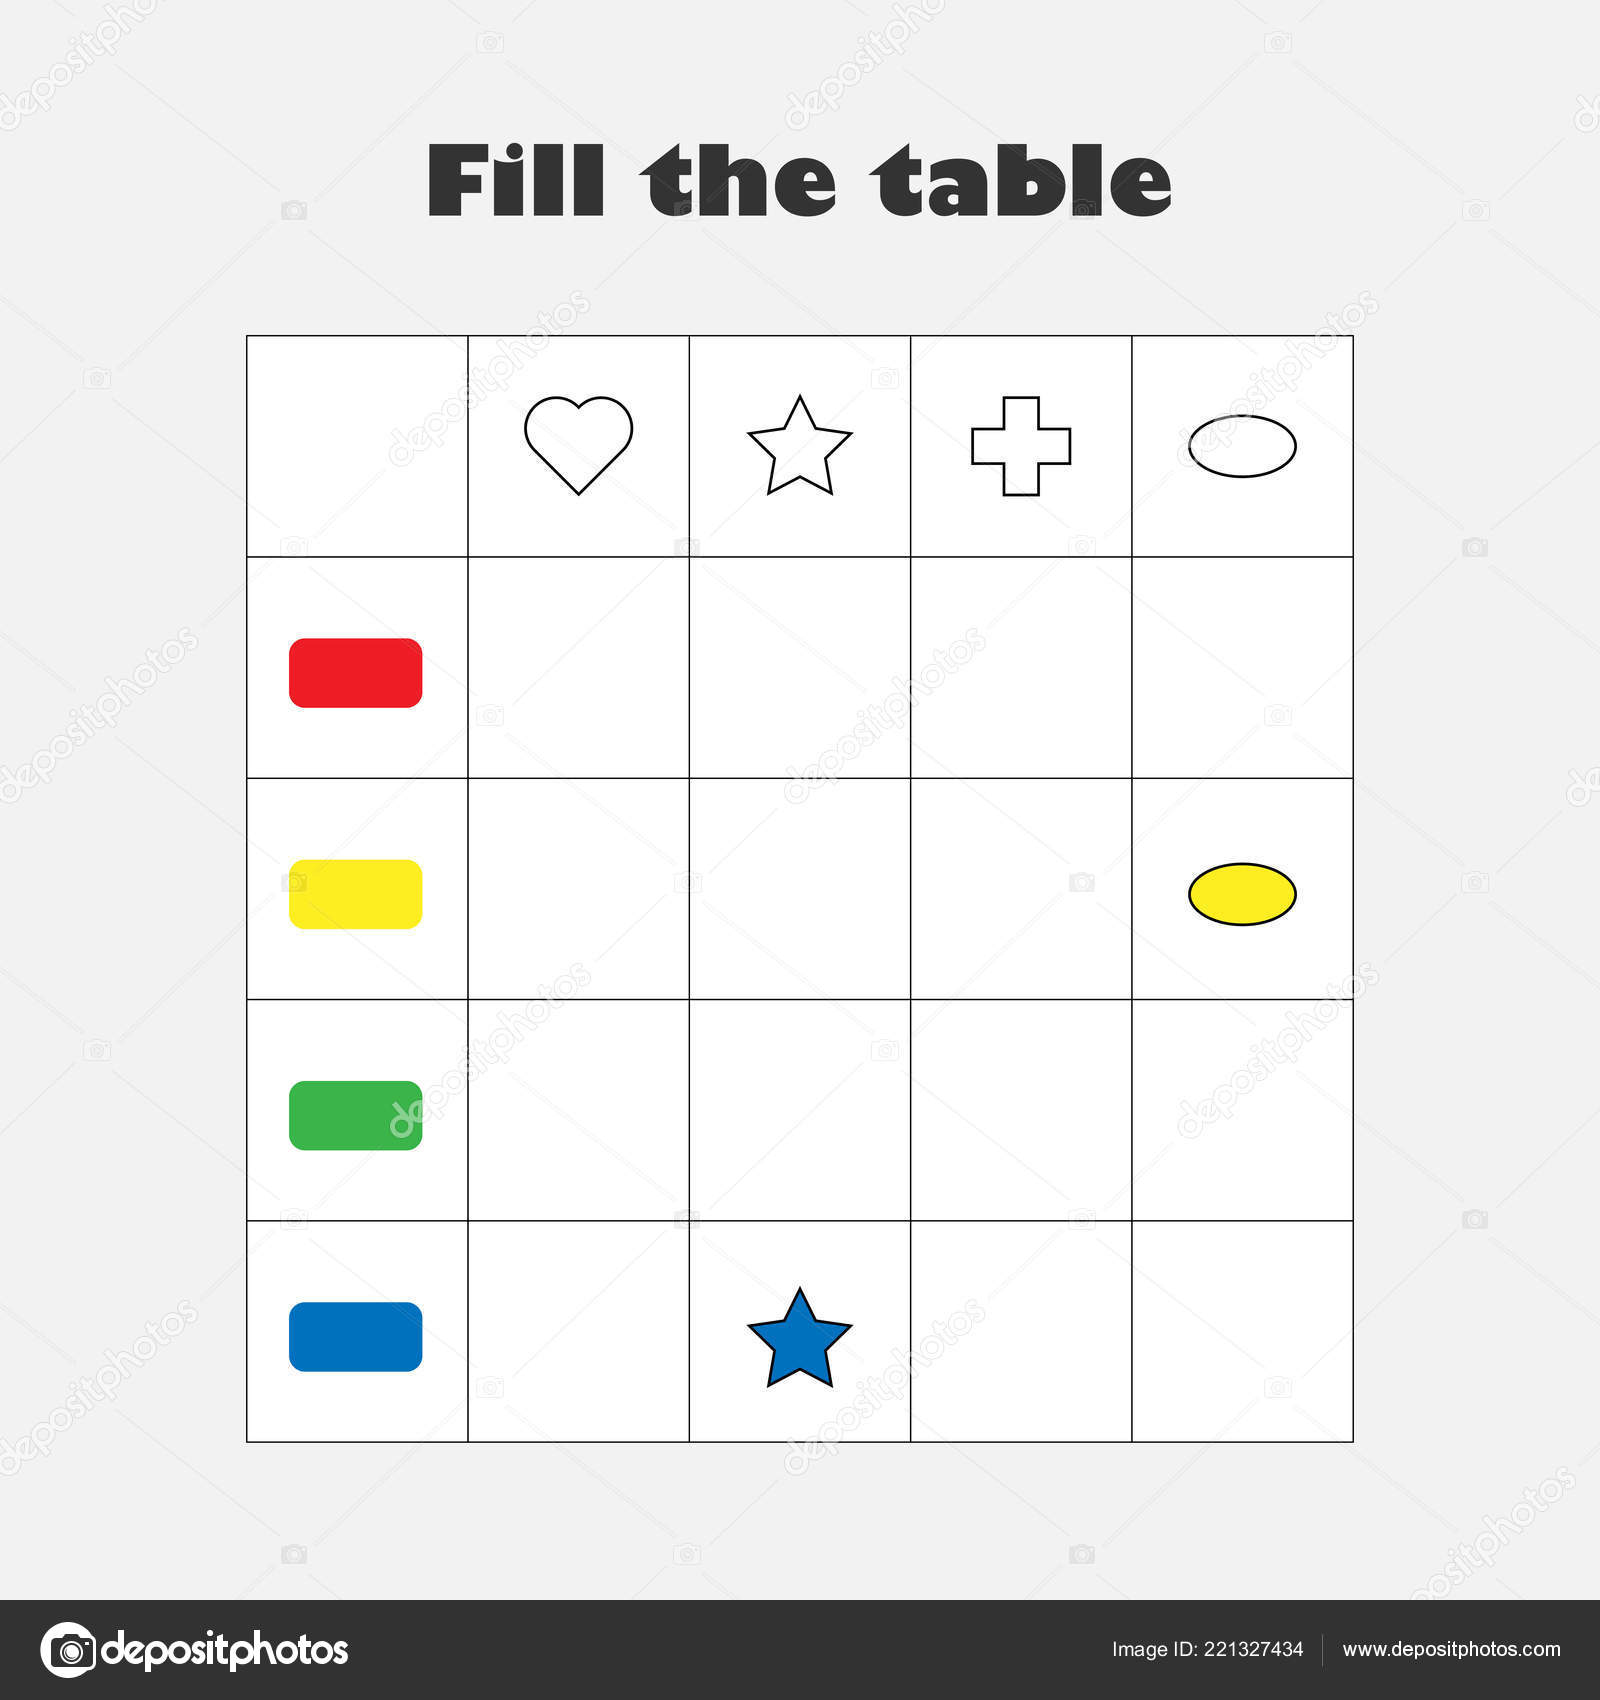 fill table colorful geometric shapes children fun education game